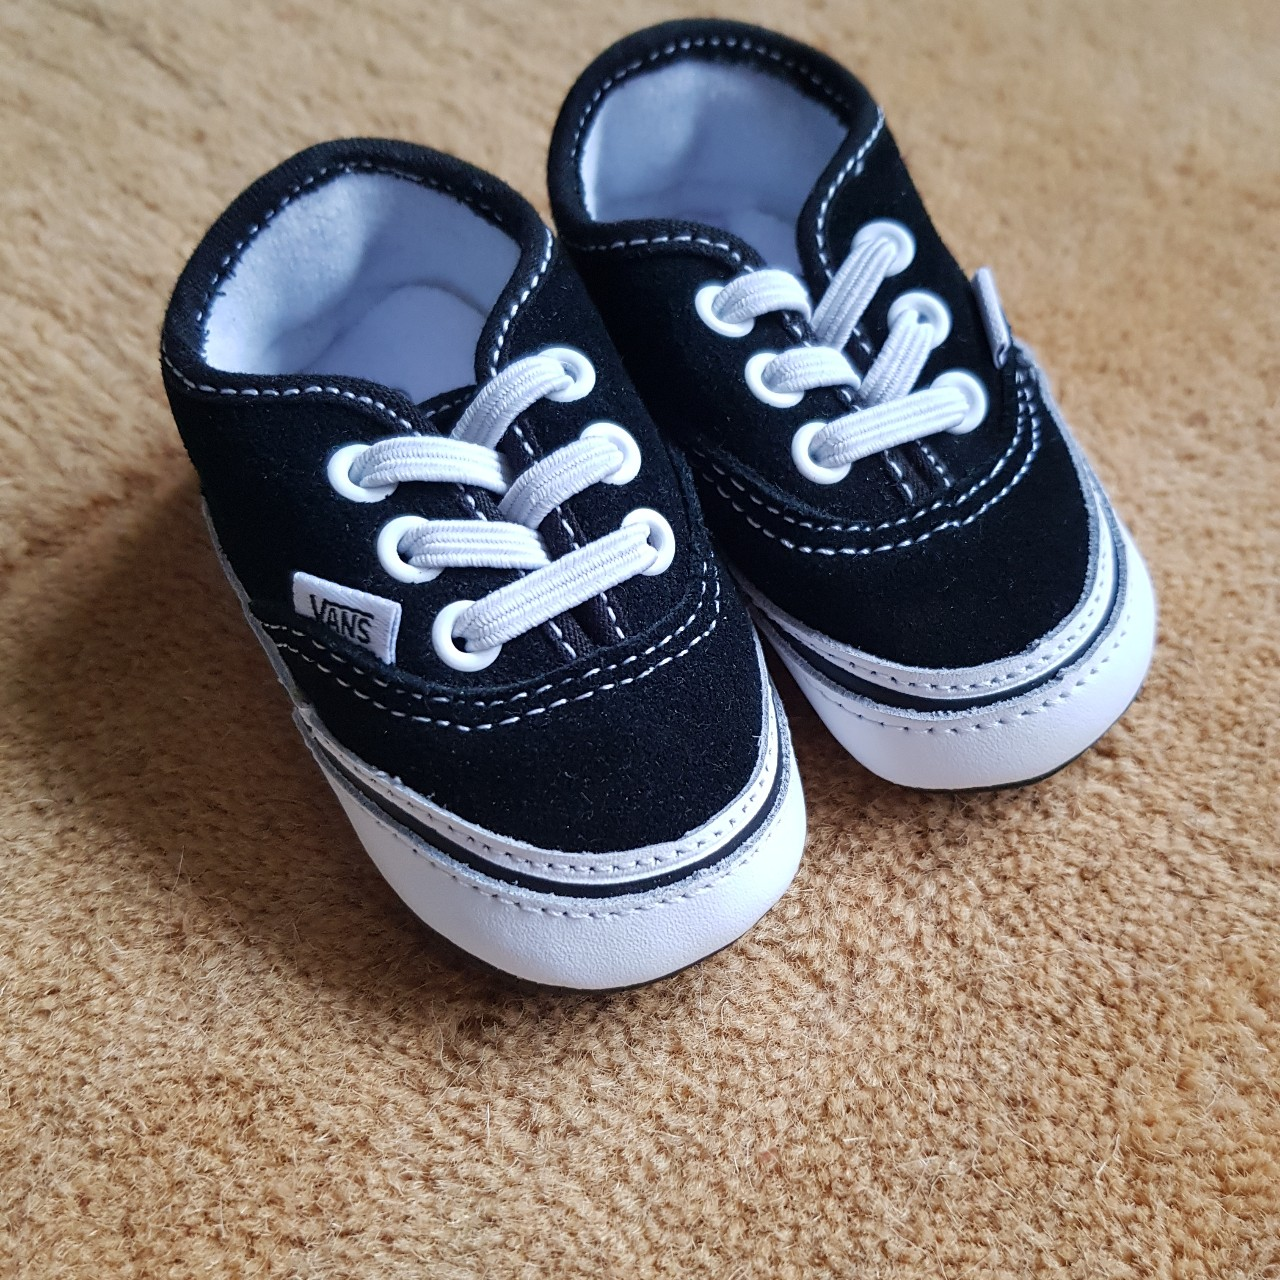 Infant/baby vans size 2 Black with